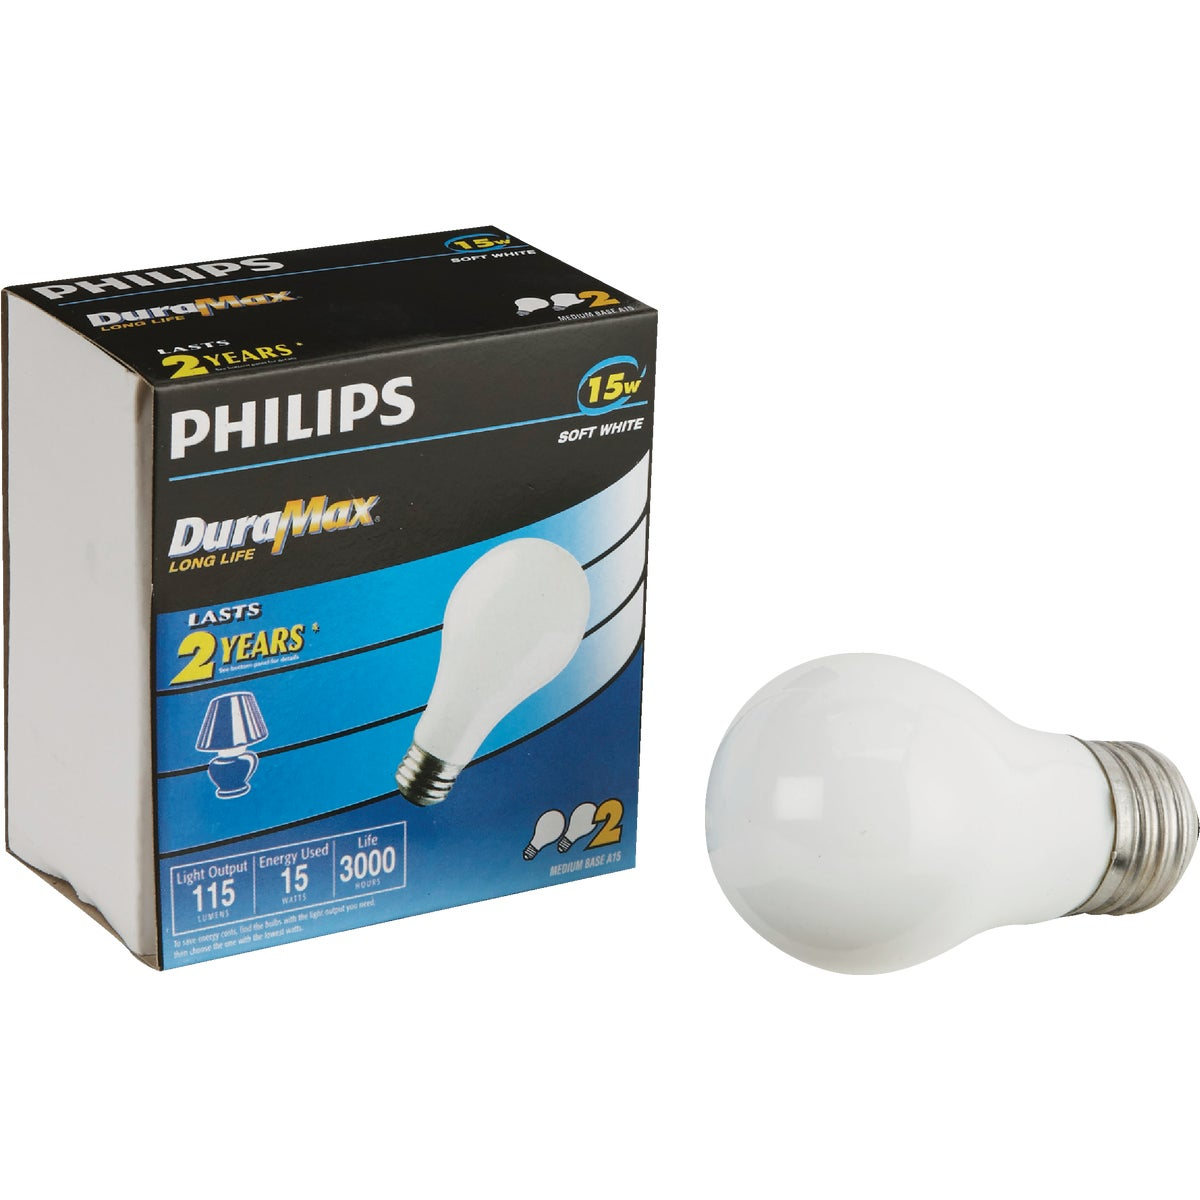 15W 2PK SW BULB - 97491 by G E Lighting